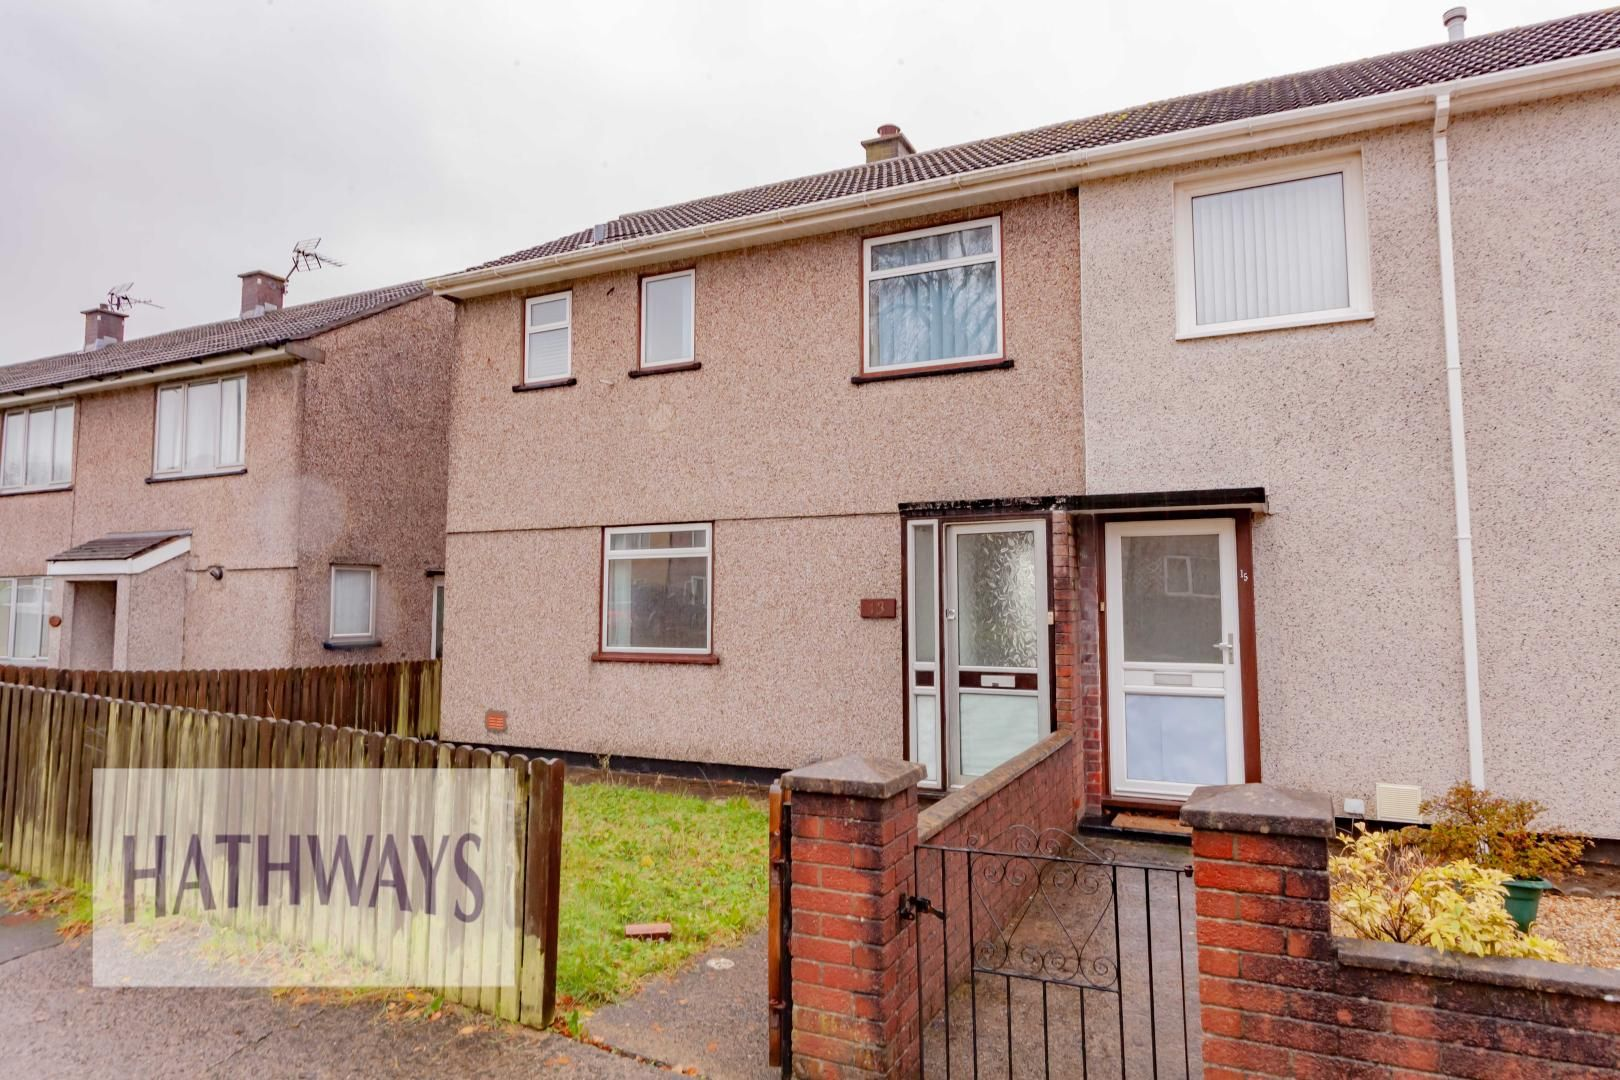 2 bed house for sale in Wordsworth Close, NP44